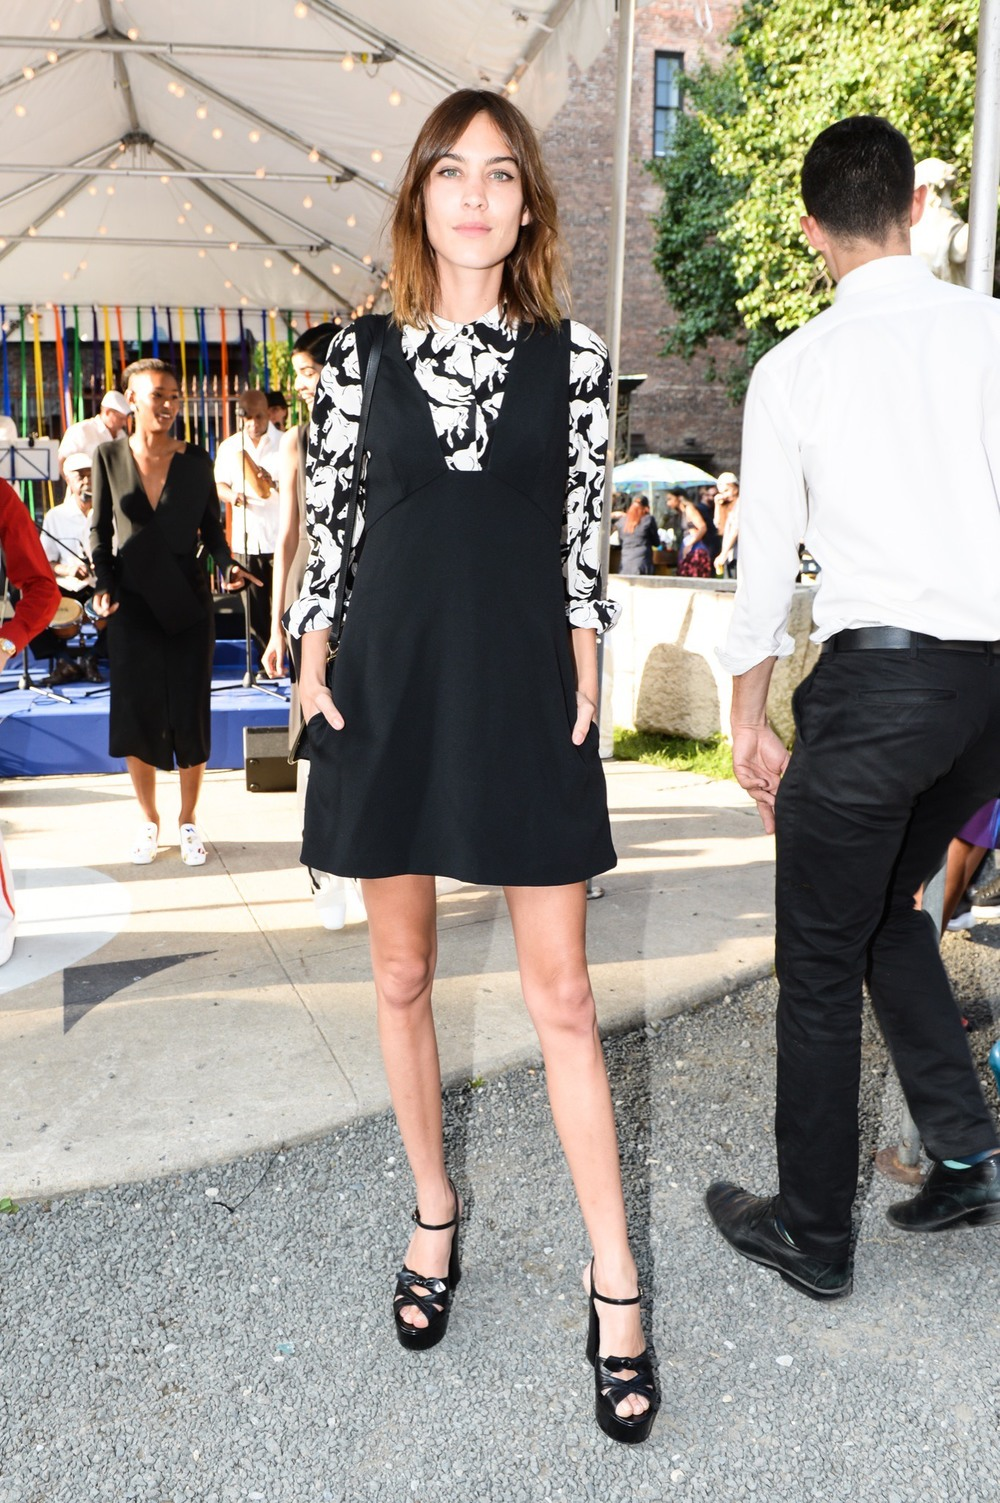 stella-mccartney-resort-presentation-party-060915-12.jpg